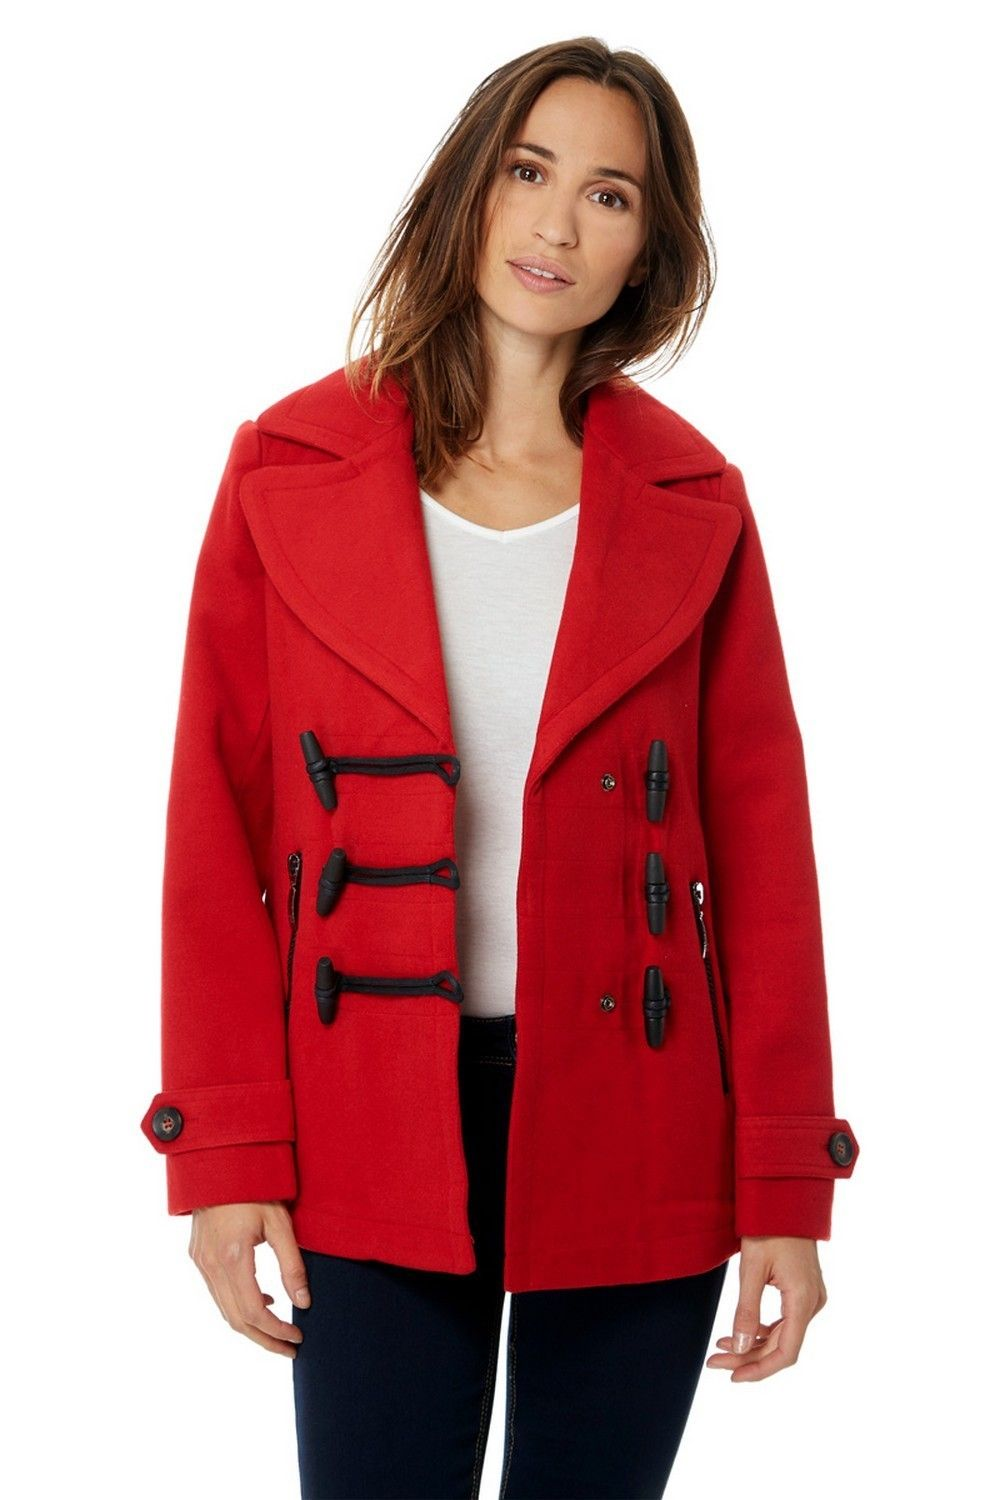 Assuili Short Duffle-style Coat in Red